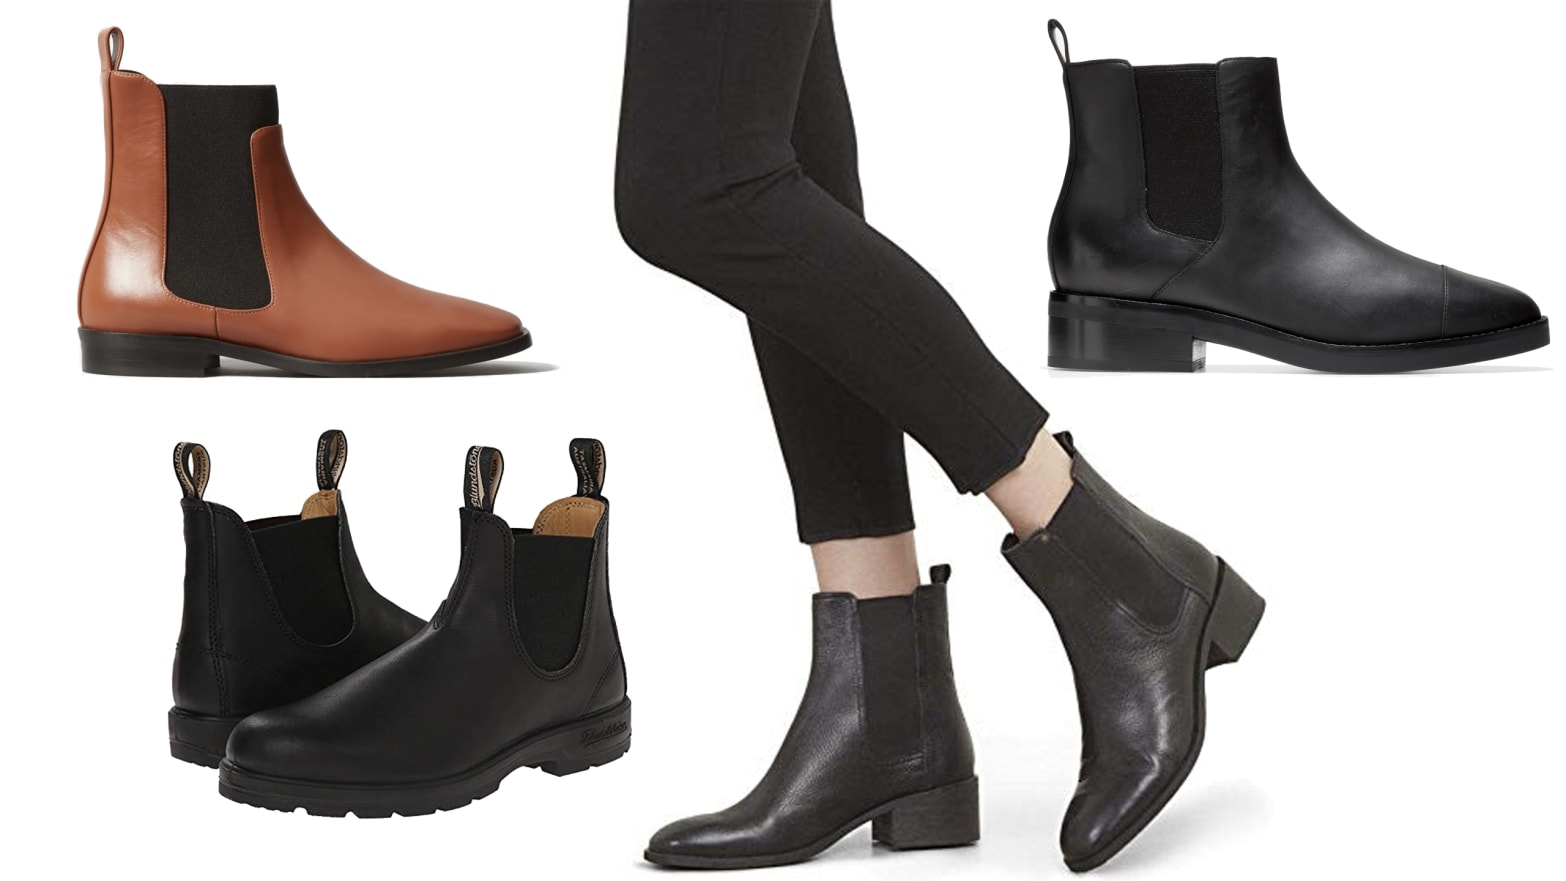 The Best Chelsea Boots You Can Buy In 2019 | FashionBeans